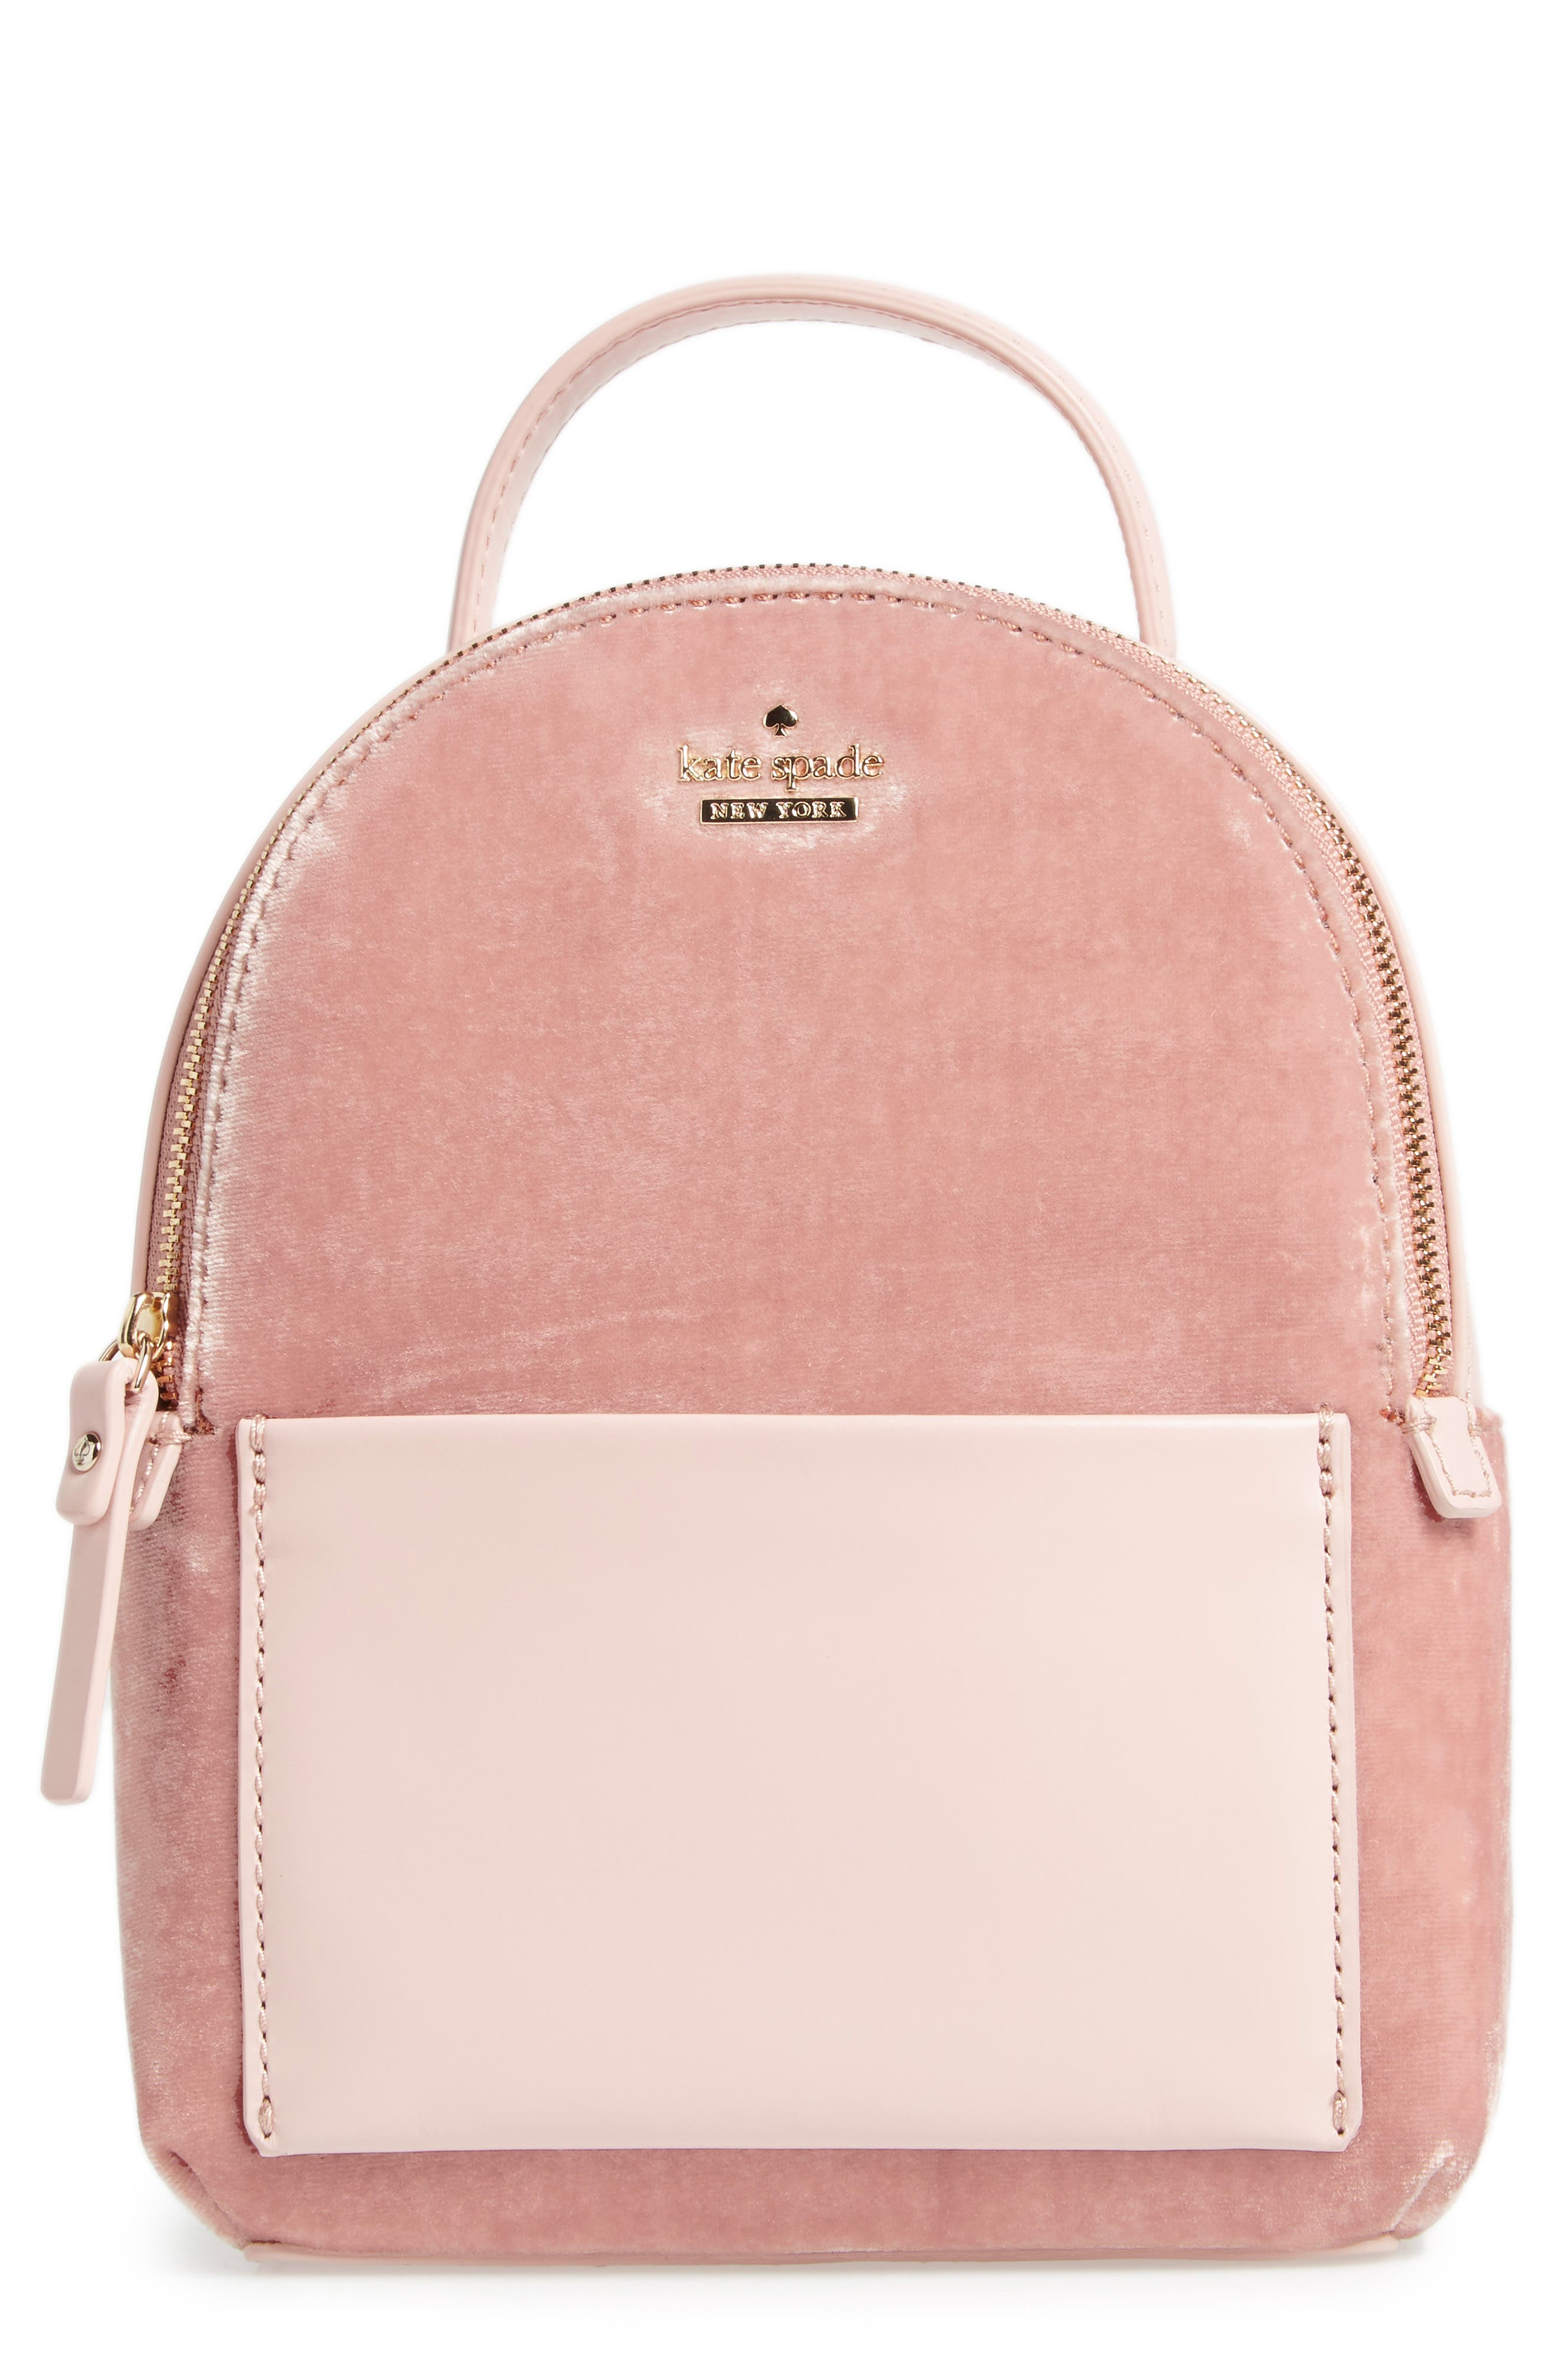 watson lane velvet merry convertible backpack,                             Main thumbnail 3, color,